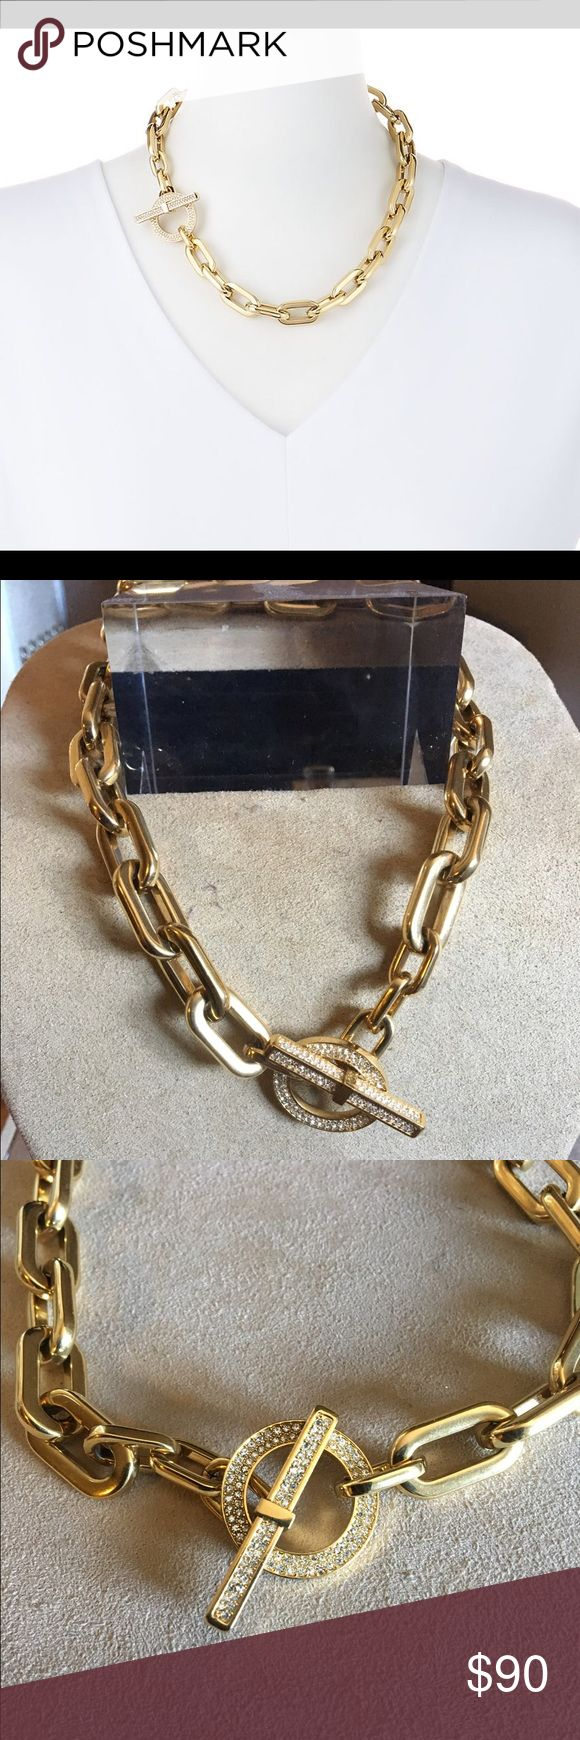 """Michael Kors Gold Pave Cityscape Link Necklace 18"""" Auth like new great condition - light surface scratches... Classic style with a glamorous twist. This gilded chain necklace is the kind of fresh yet elegant essential that partners perfectly with every outfit and instantly elevates the look. Its pave-embellished toggle provides just a hint of sparkle, finishing the design on a dazzling note.  Toggle clasp closure  Approx. Measurements: Length, 18"""". Width, 1/2"""" Michael Kors Jewelry Necklaces"""